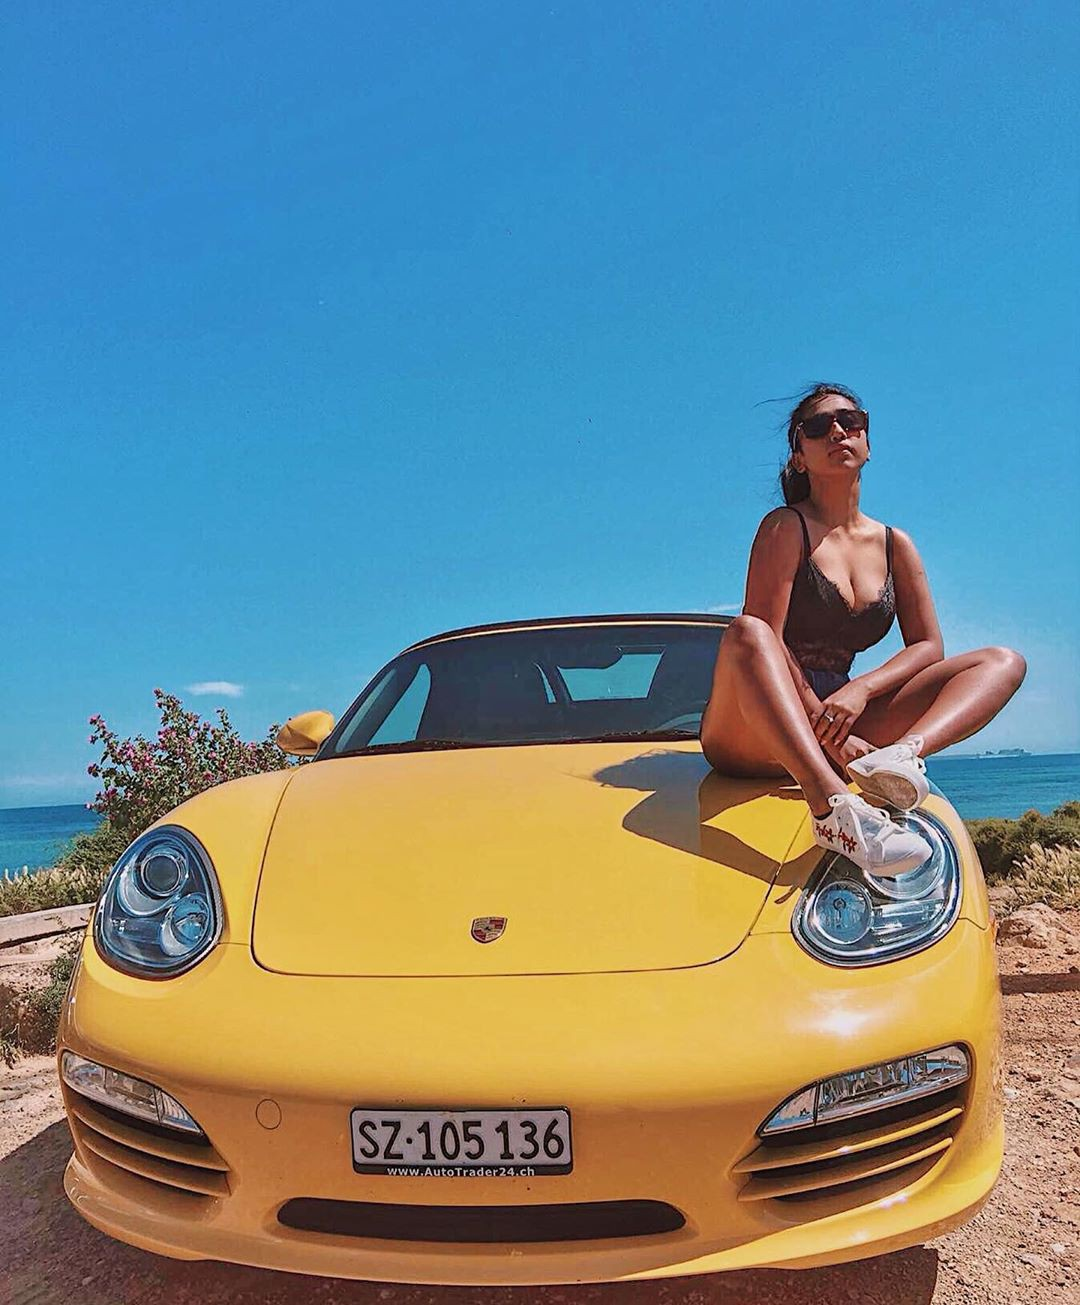 Adorable design porsche boxster, MTV Splitsvilla